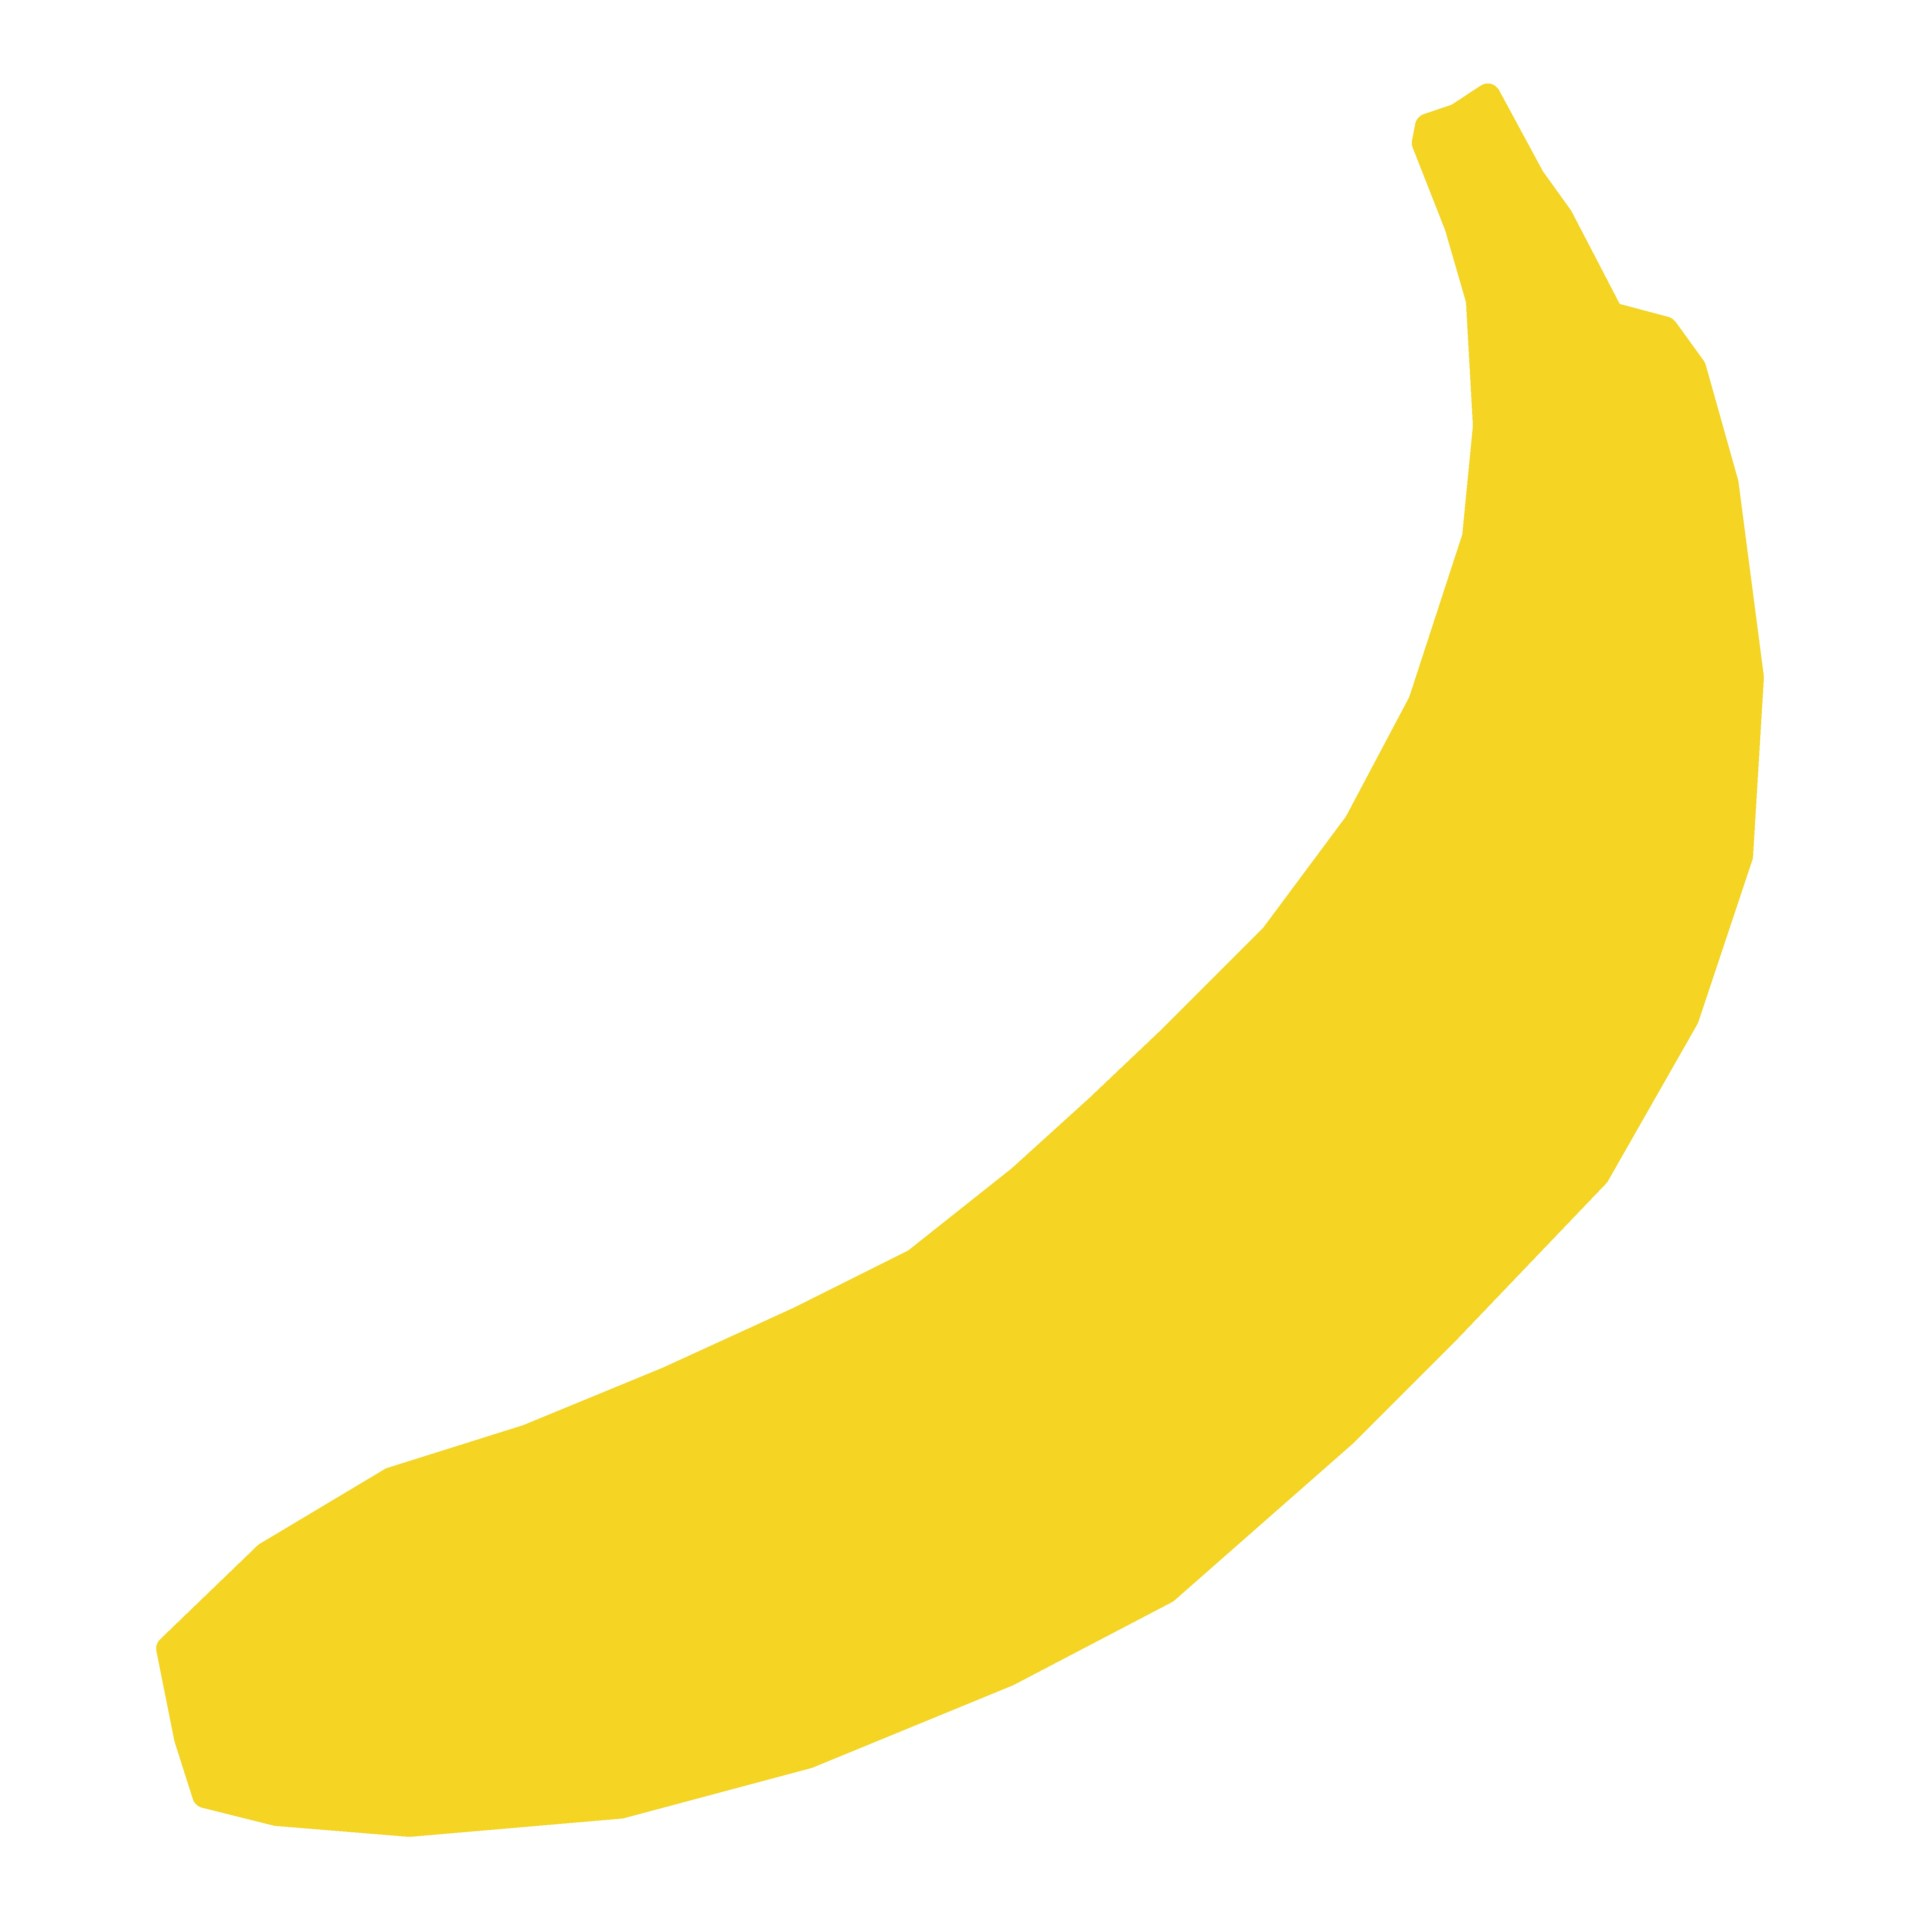 Silhouette free stock photo. Banana clipart babana